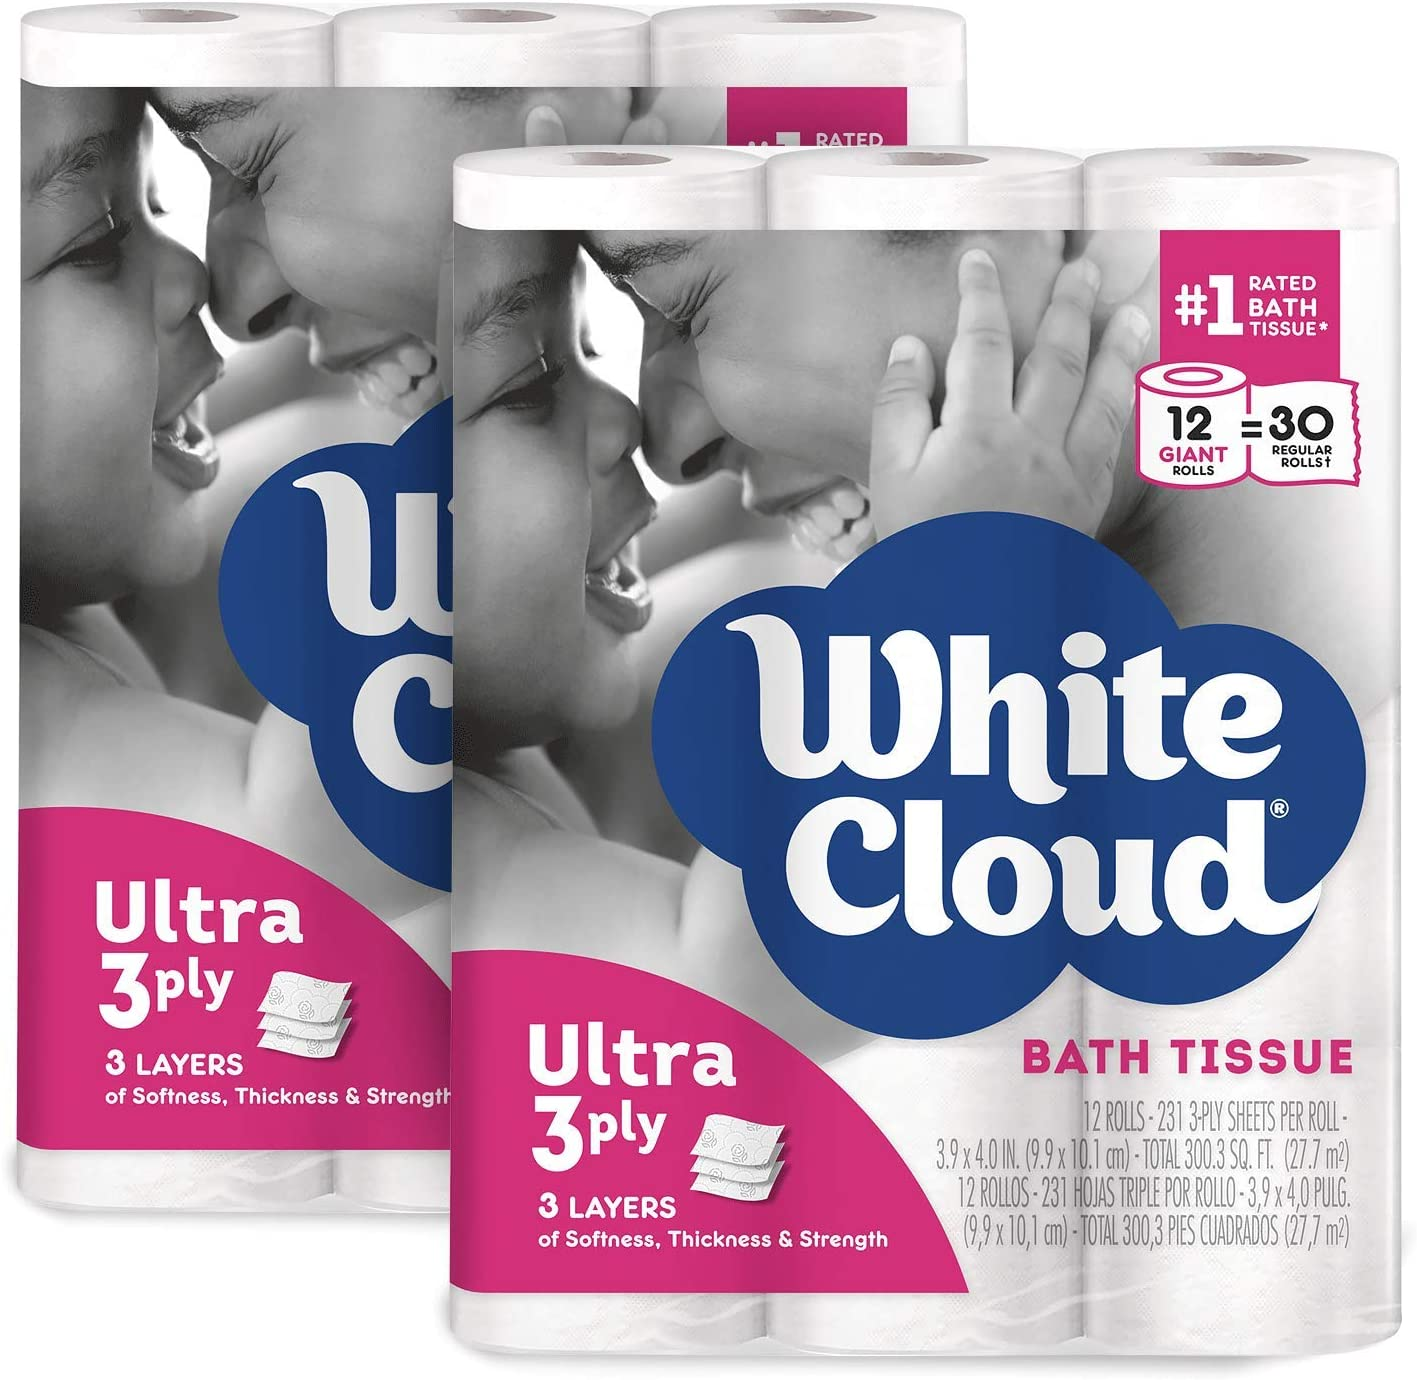 White Cloud Ultra Soft & Thick 3-Ply Toilet Paper – 2-Pack of 12 Rolls, 24 Total Giant Rolls, 231 Sheets per Roll